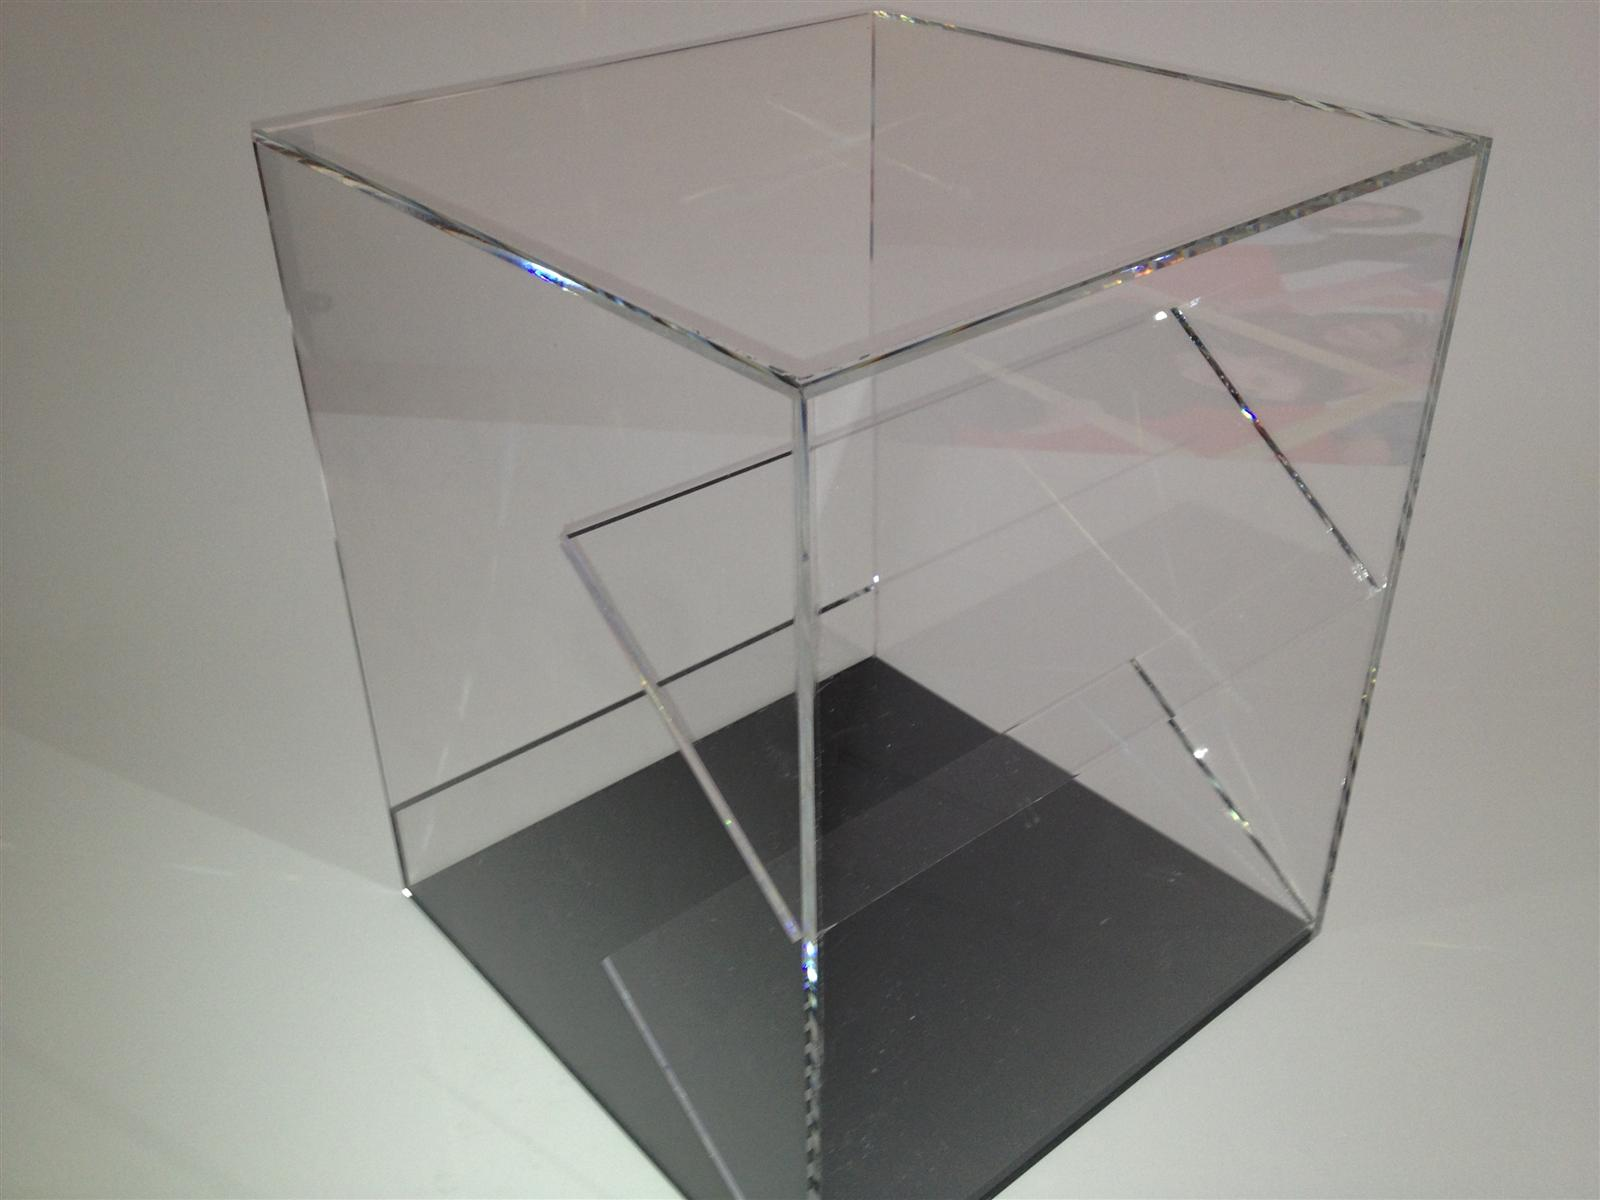 Perspex Acrylic Display Case with Shelves - Tabletop